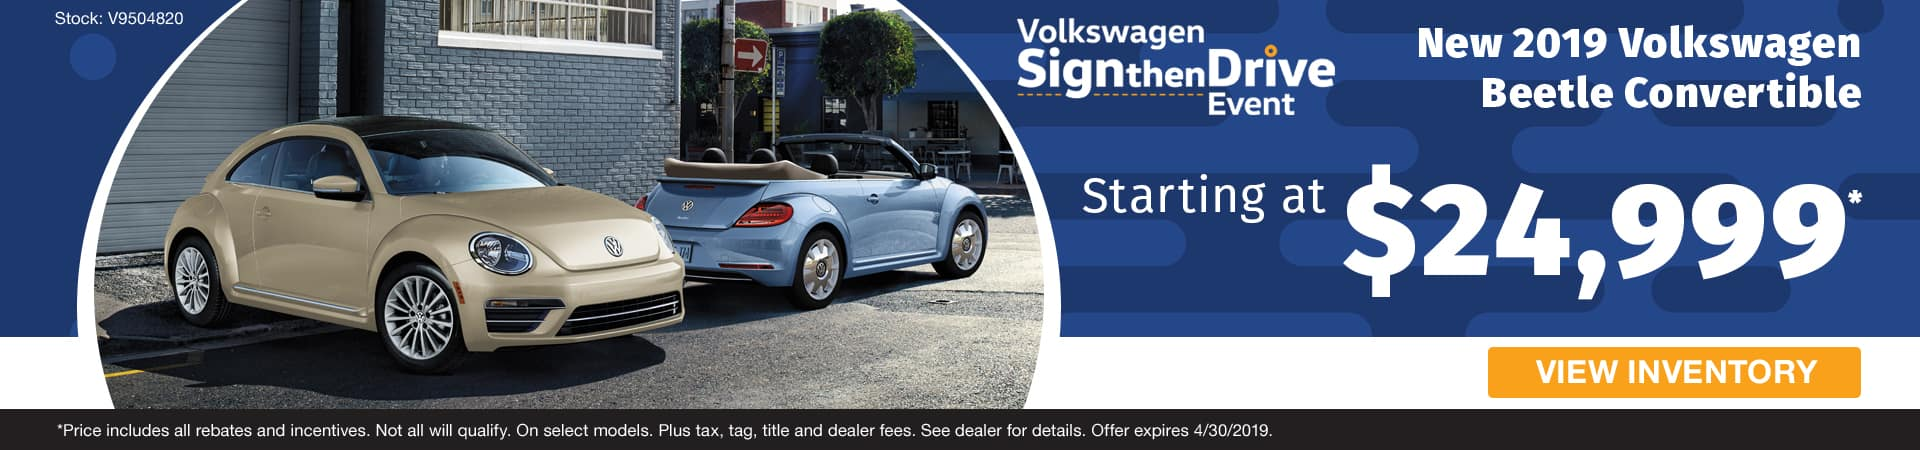 Drive home a new 2019 Volkswagen Beetle convertible starting at $24,999 in Murfreesboro TN